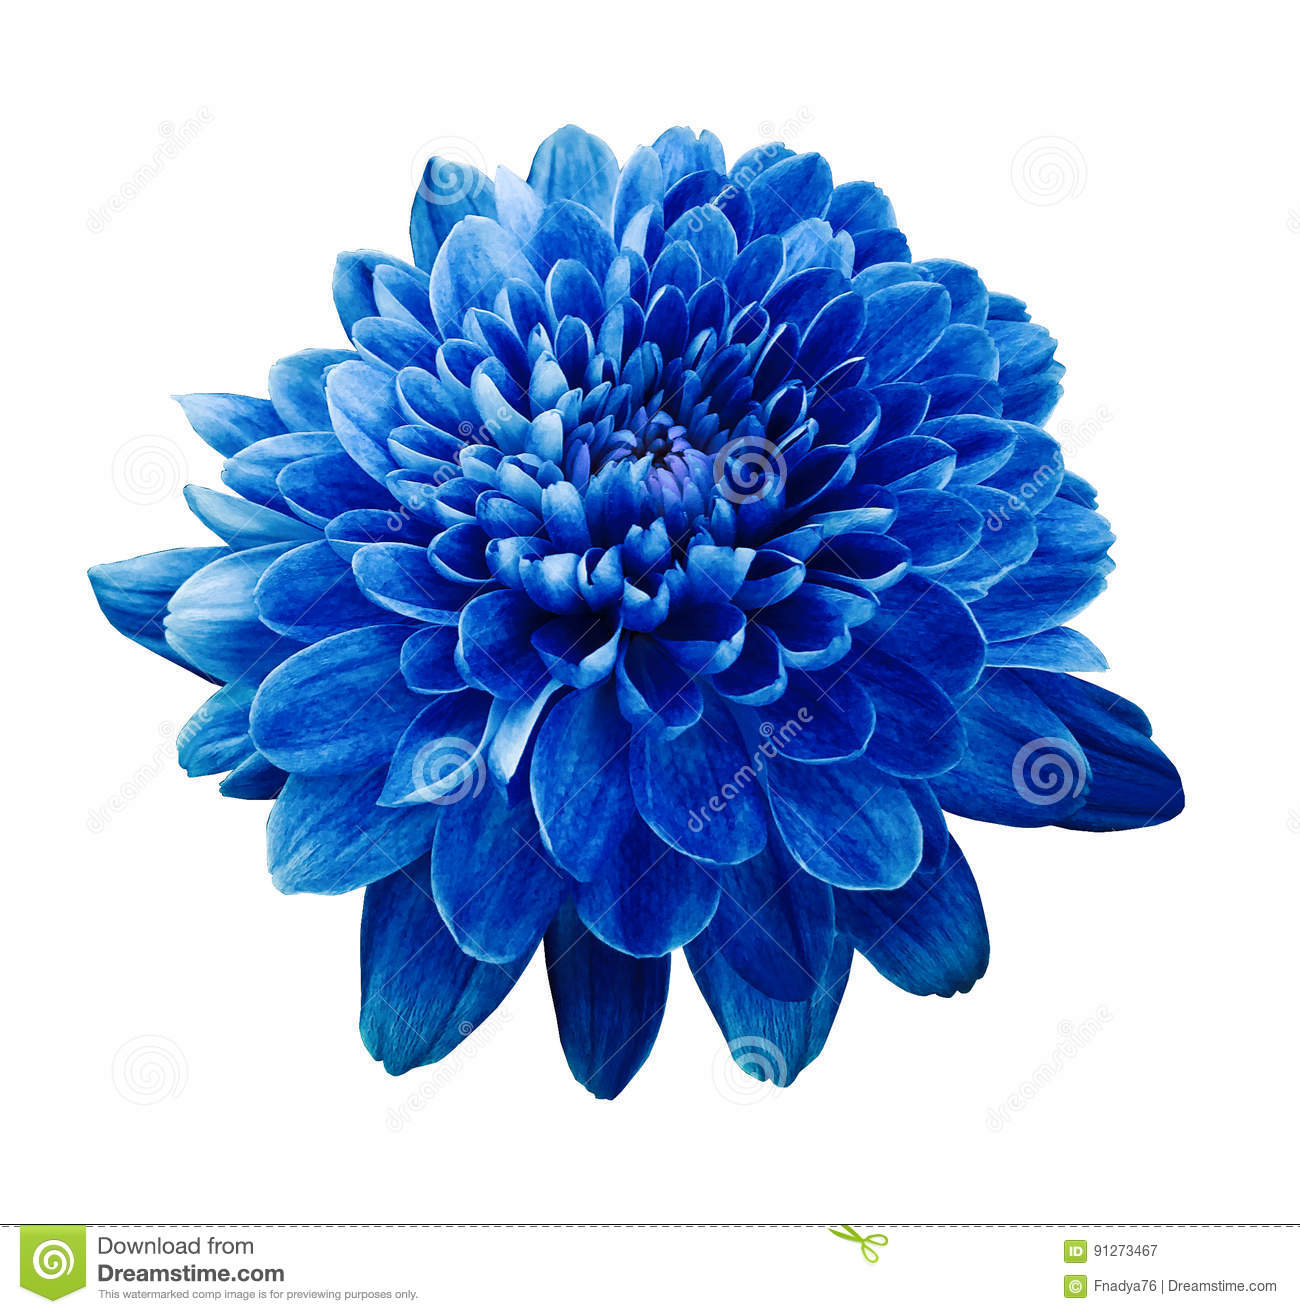 Blue flower chrysanthemum. Flower on white isolated background with clipping path. Closeup. no shadows.